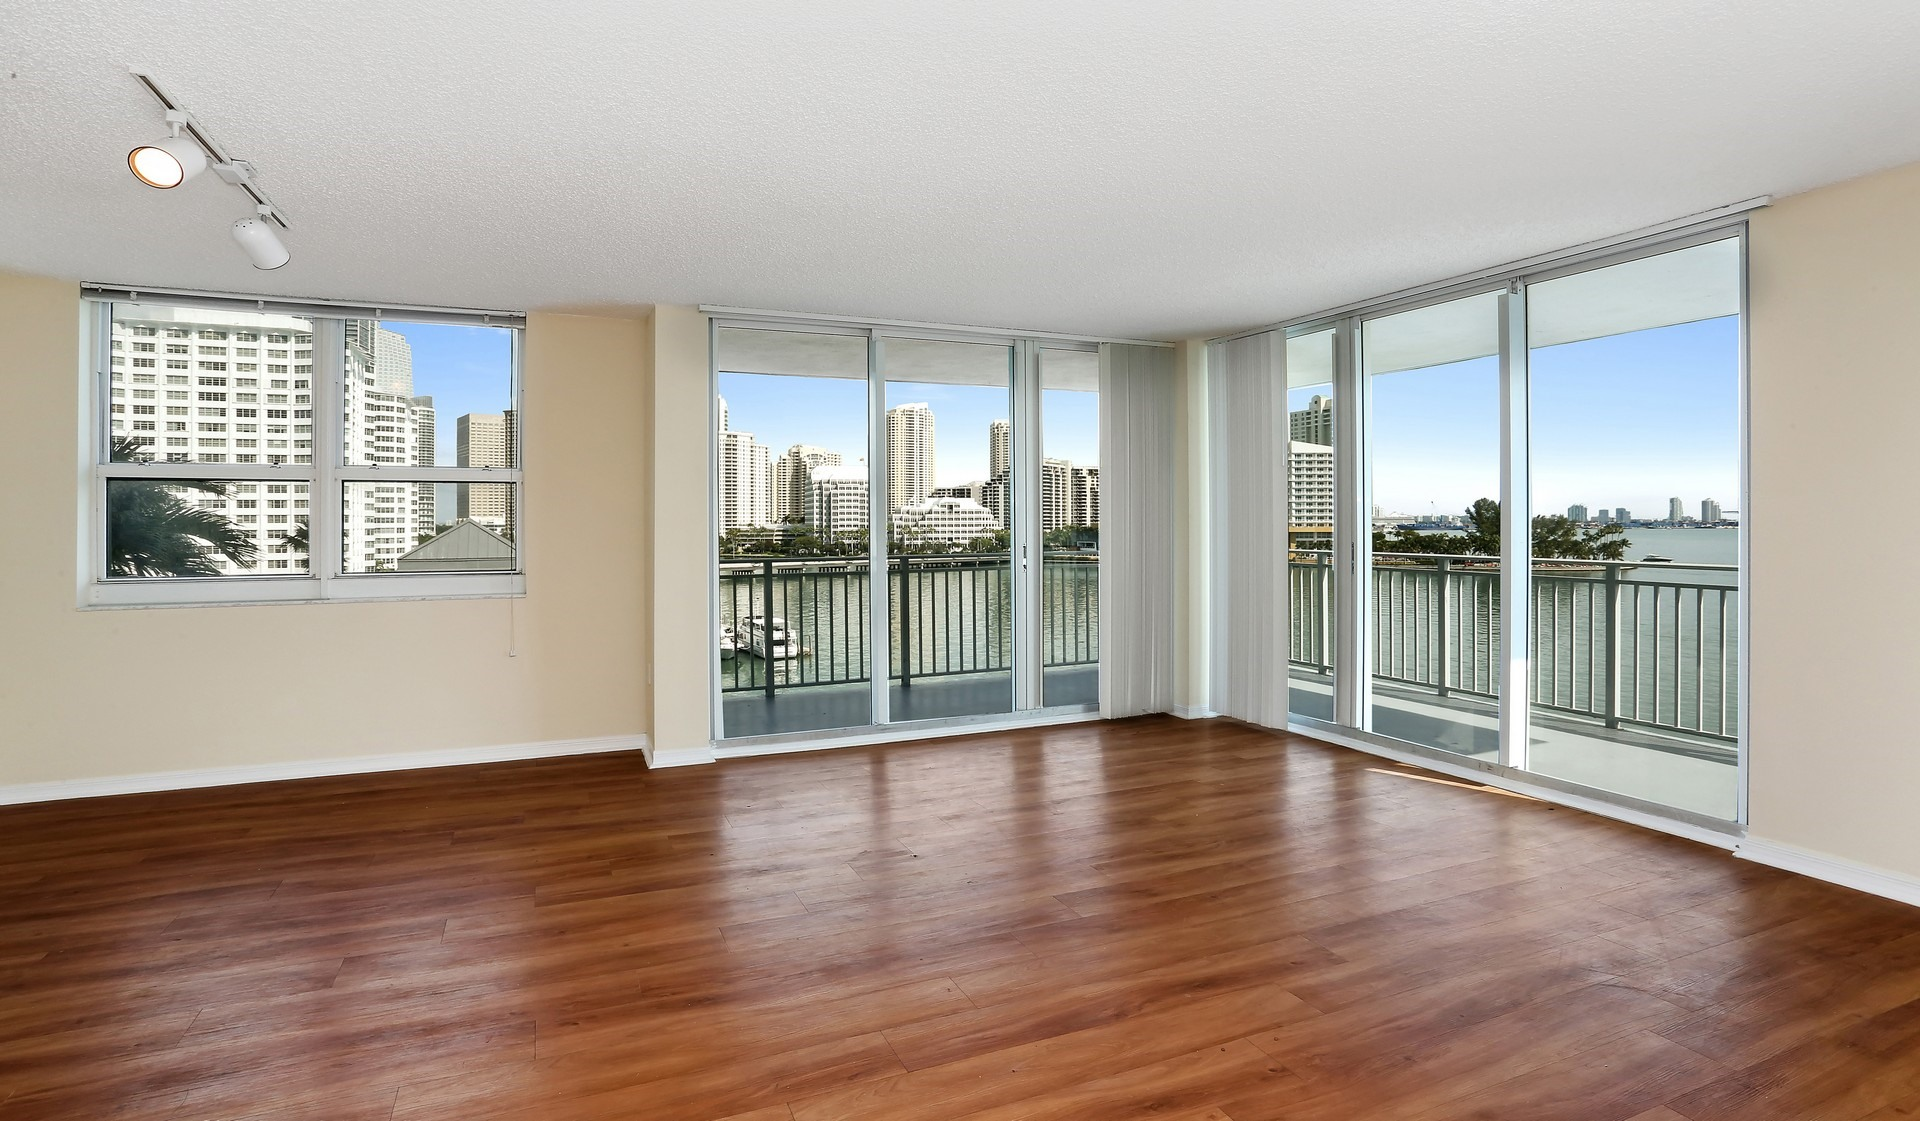 Yacht Club at Brickell - Empty Living room with views of the bay - Miami, FL